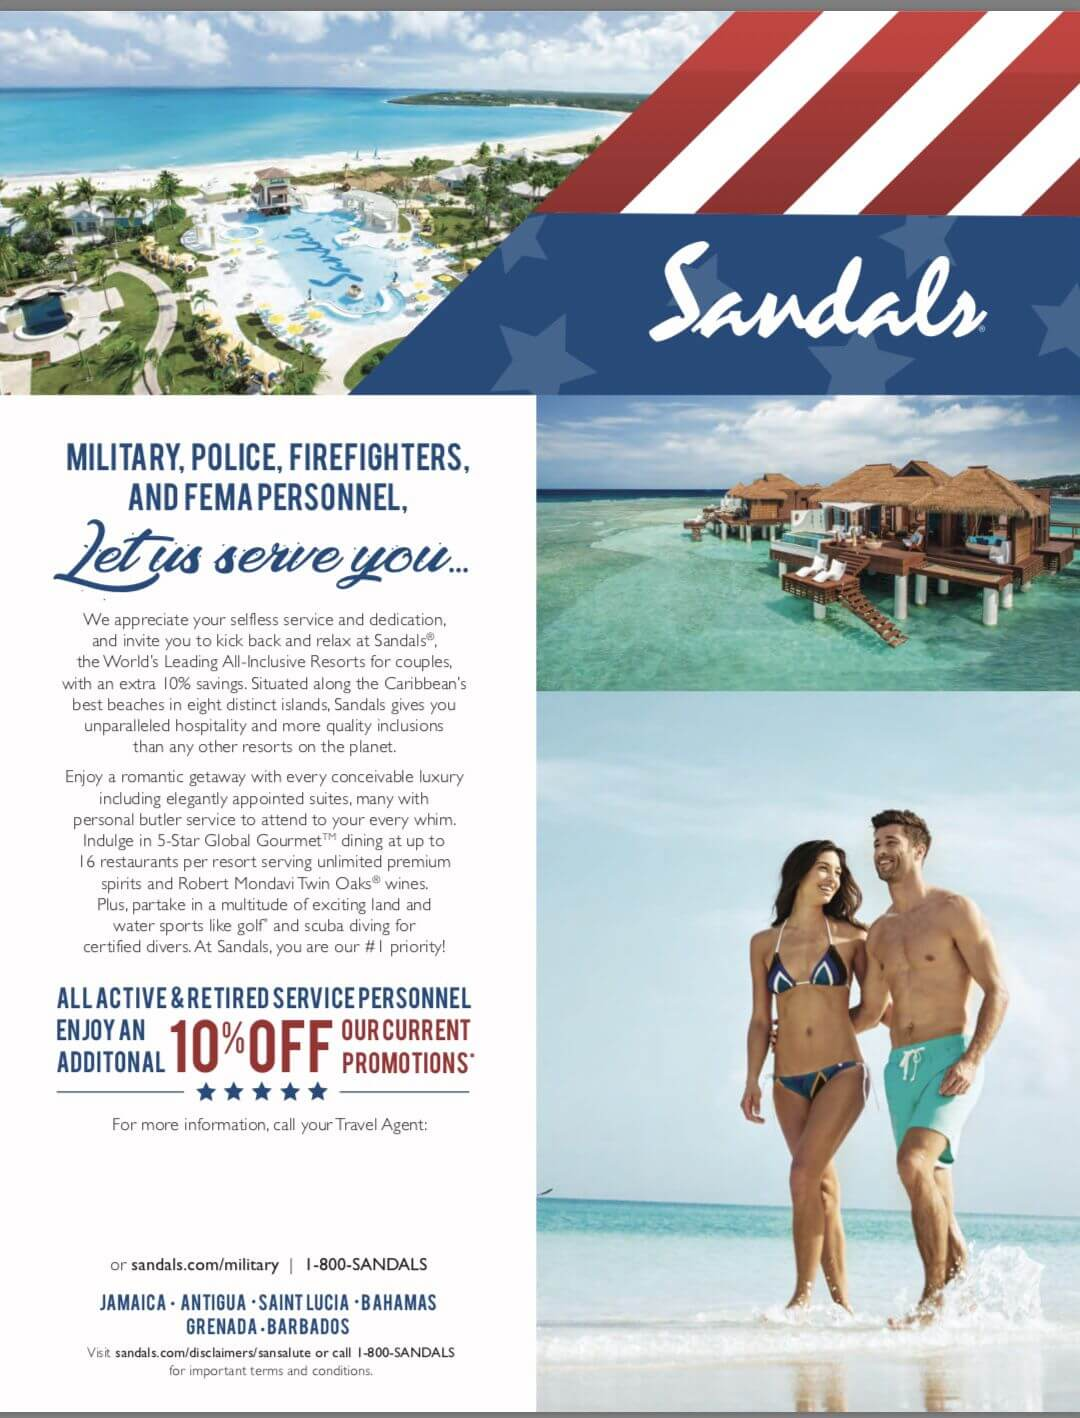 Sandals 10% Discount for Military